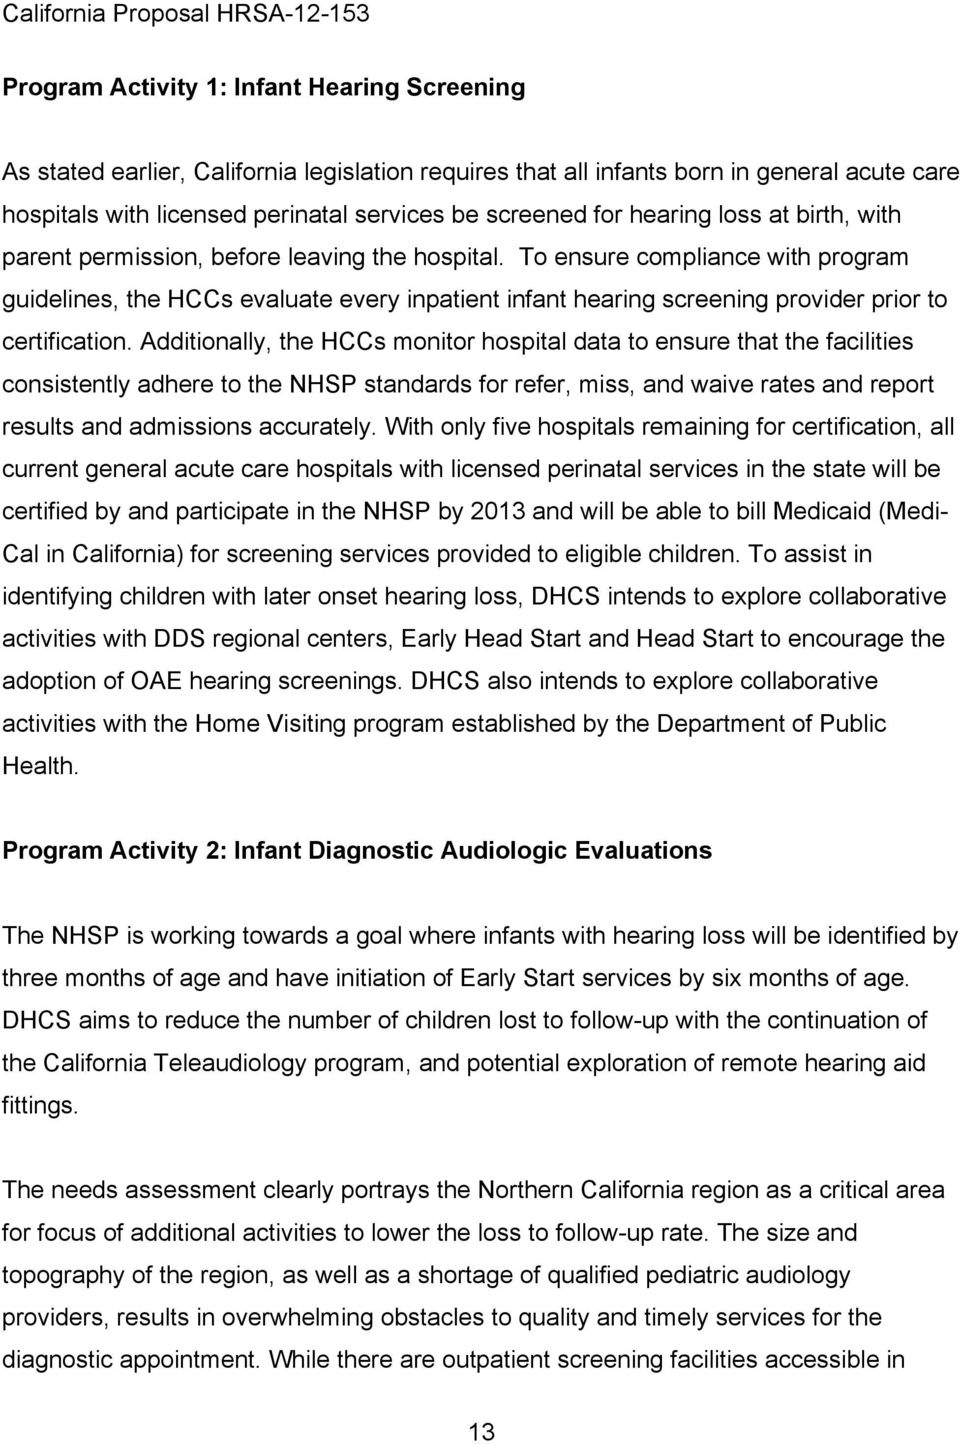 To ensure compliance with program guidelines, the HCCs evaluate every inpatient infant hearing screening provider prior to certification.